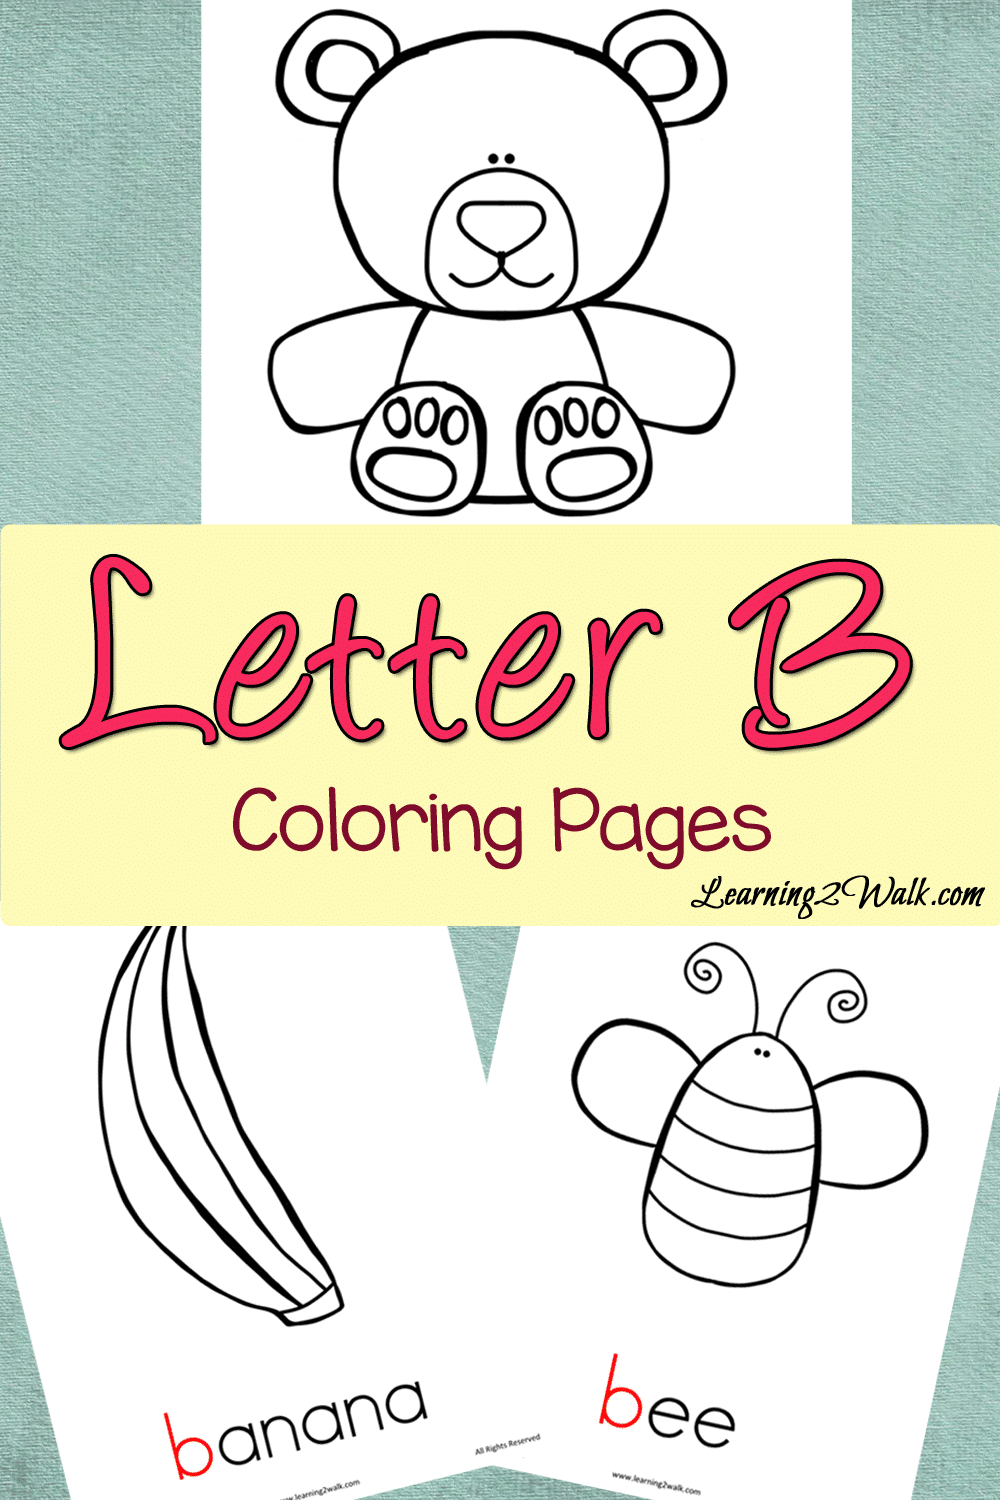 Letter B Coloring Pages For Preschoolers : Pics photos letter b preschool activities